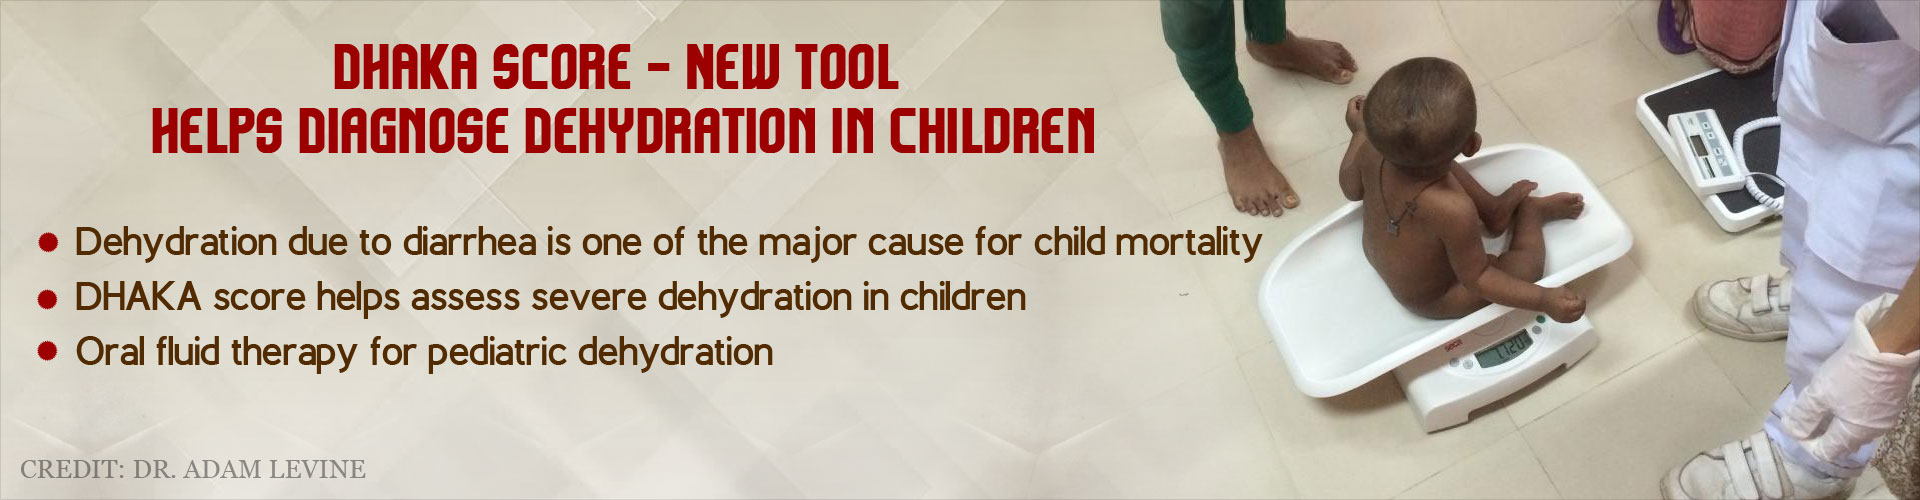 DHAKA Score – A New Tool for Diagnosing Dehydration in Children